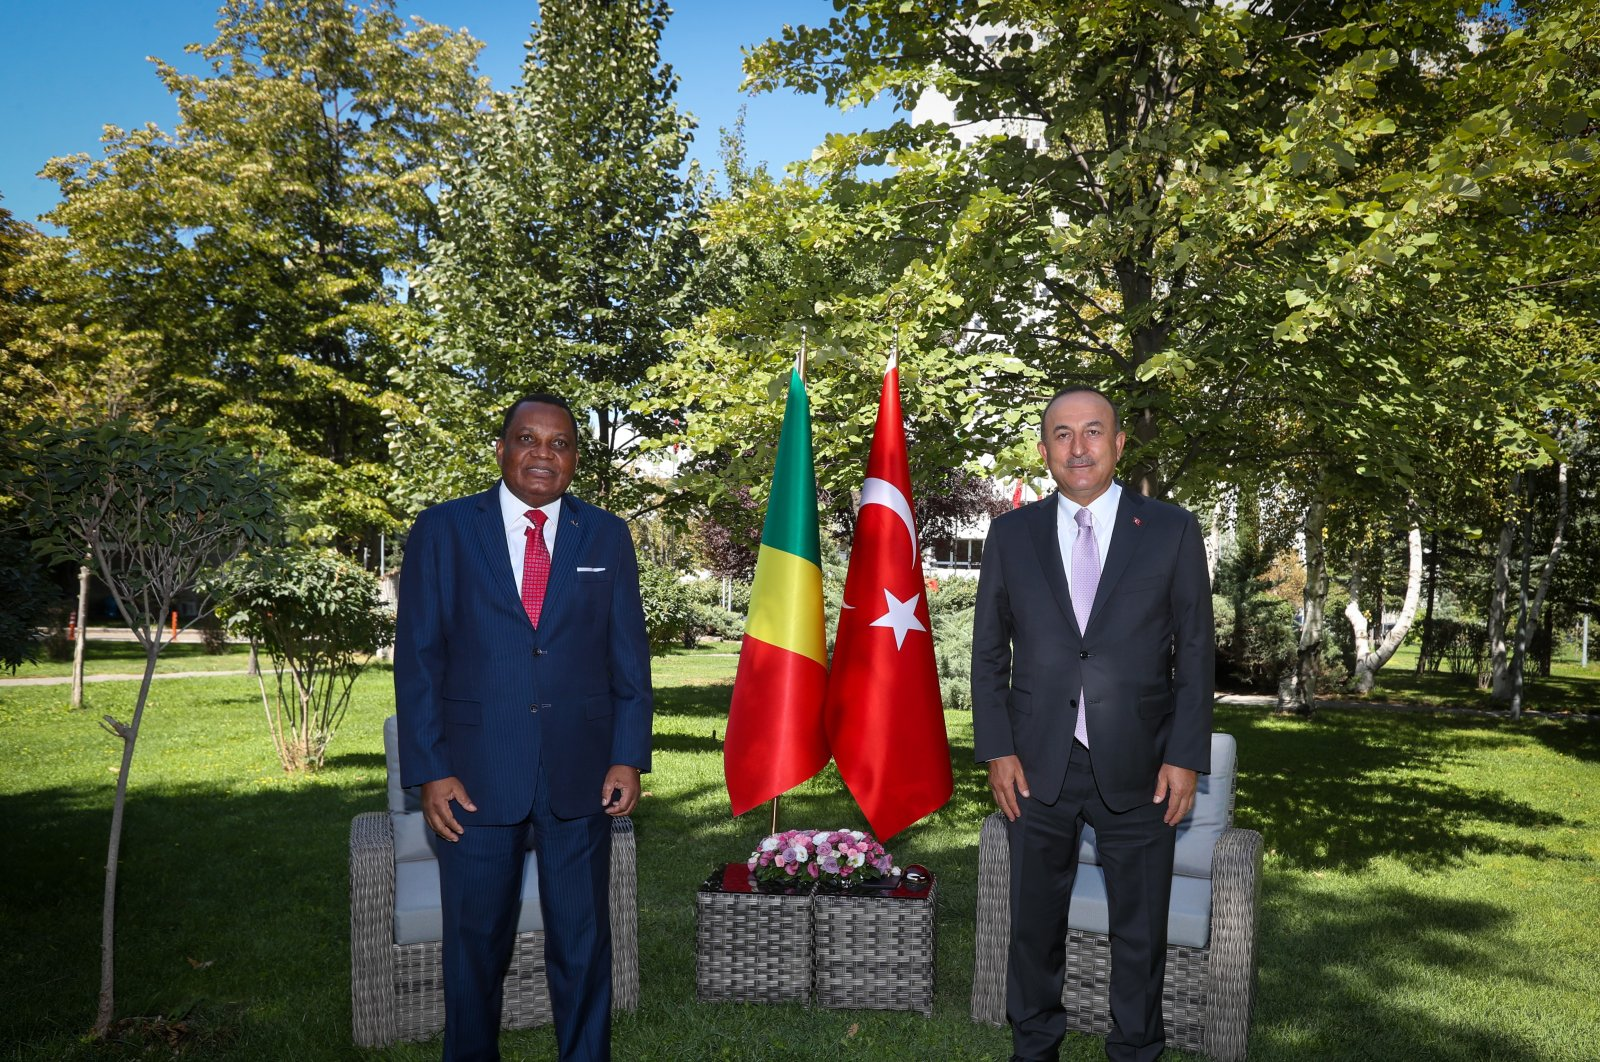 Foreign Minister Mevlüt Çavuşoğlu with Congolese counterpart Jean-Claude Gakosso in Ankara on Sept. 8, 2020. (AA Photo)